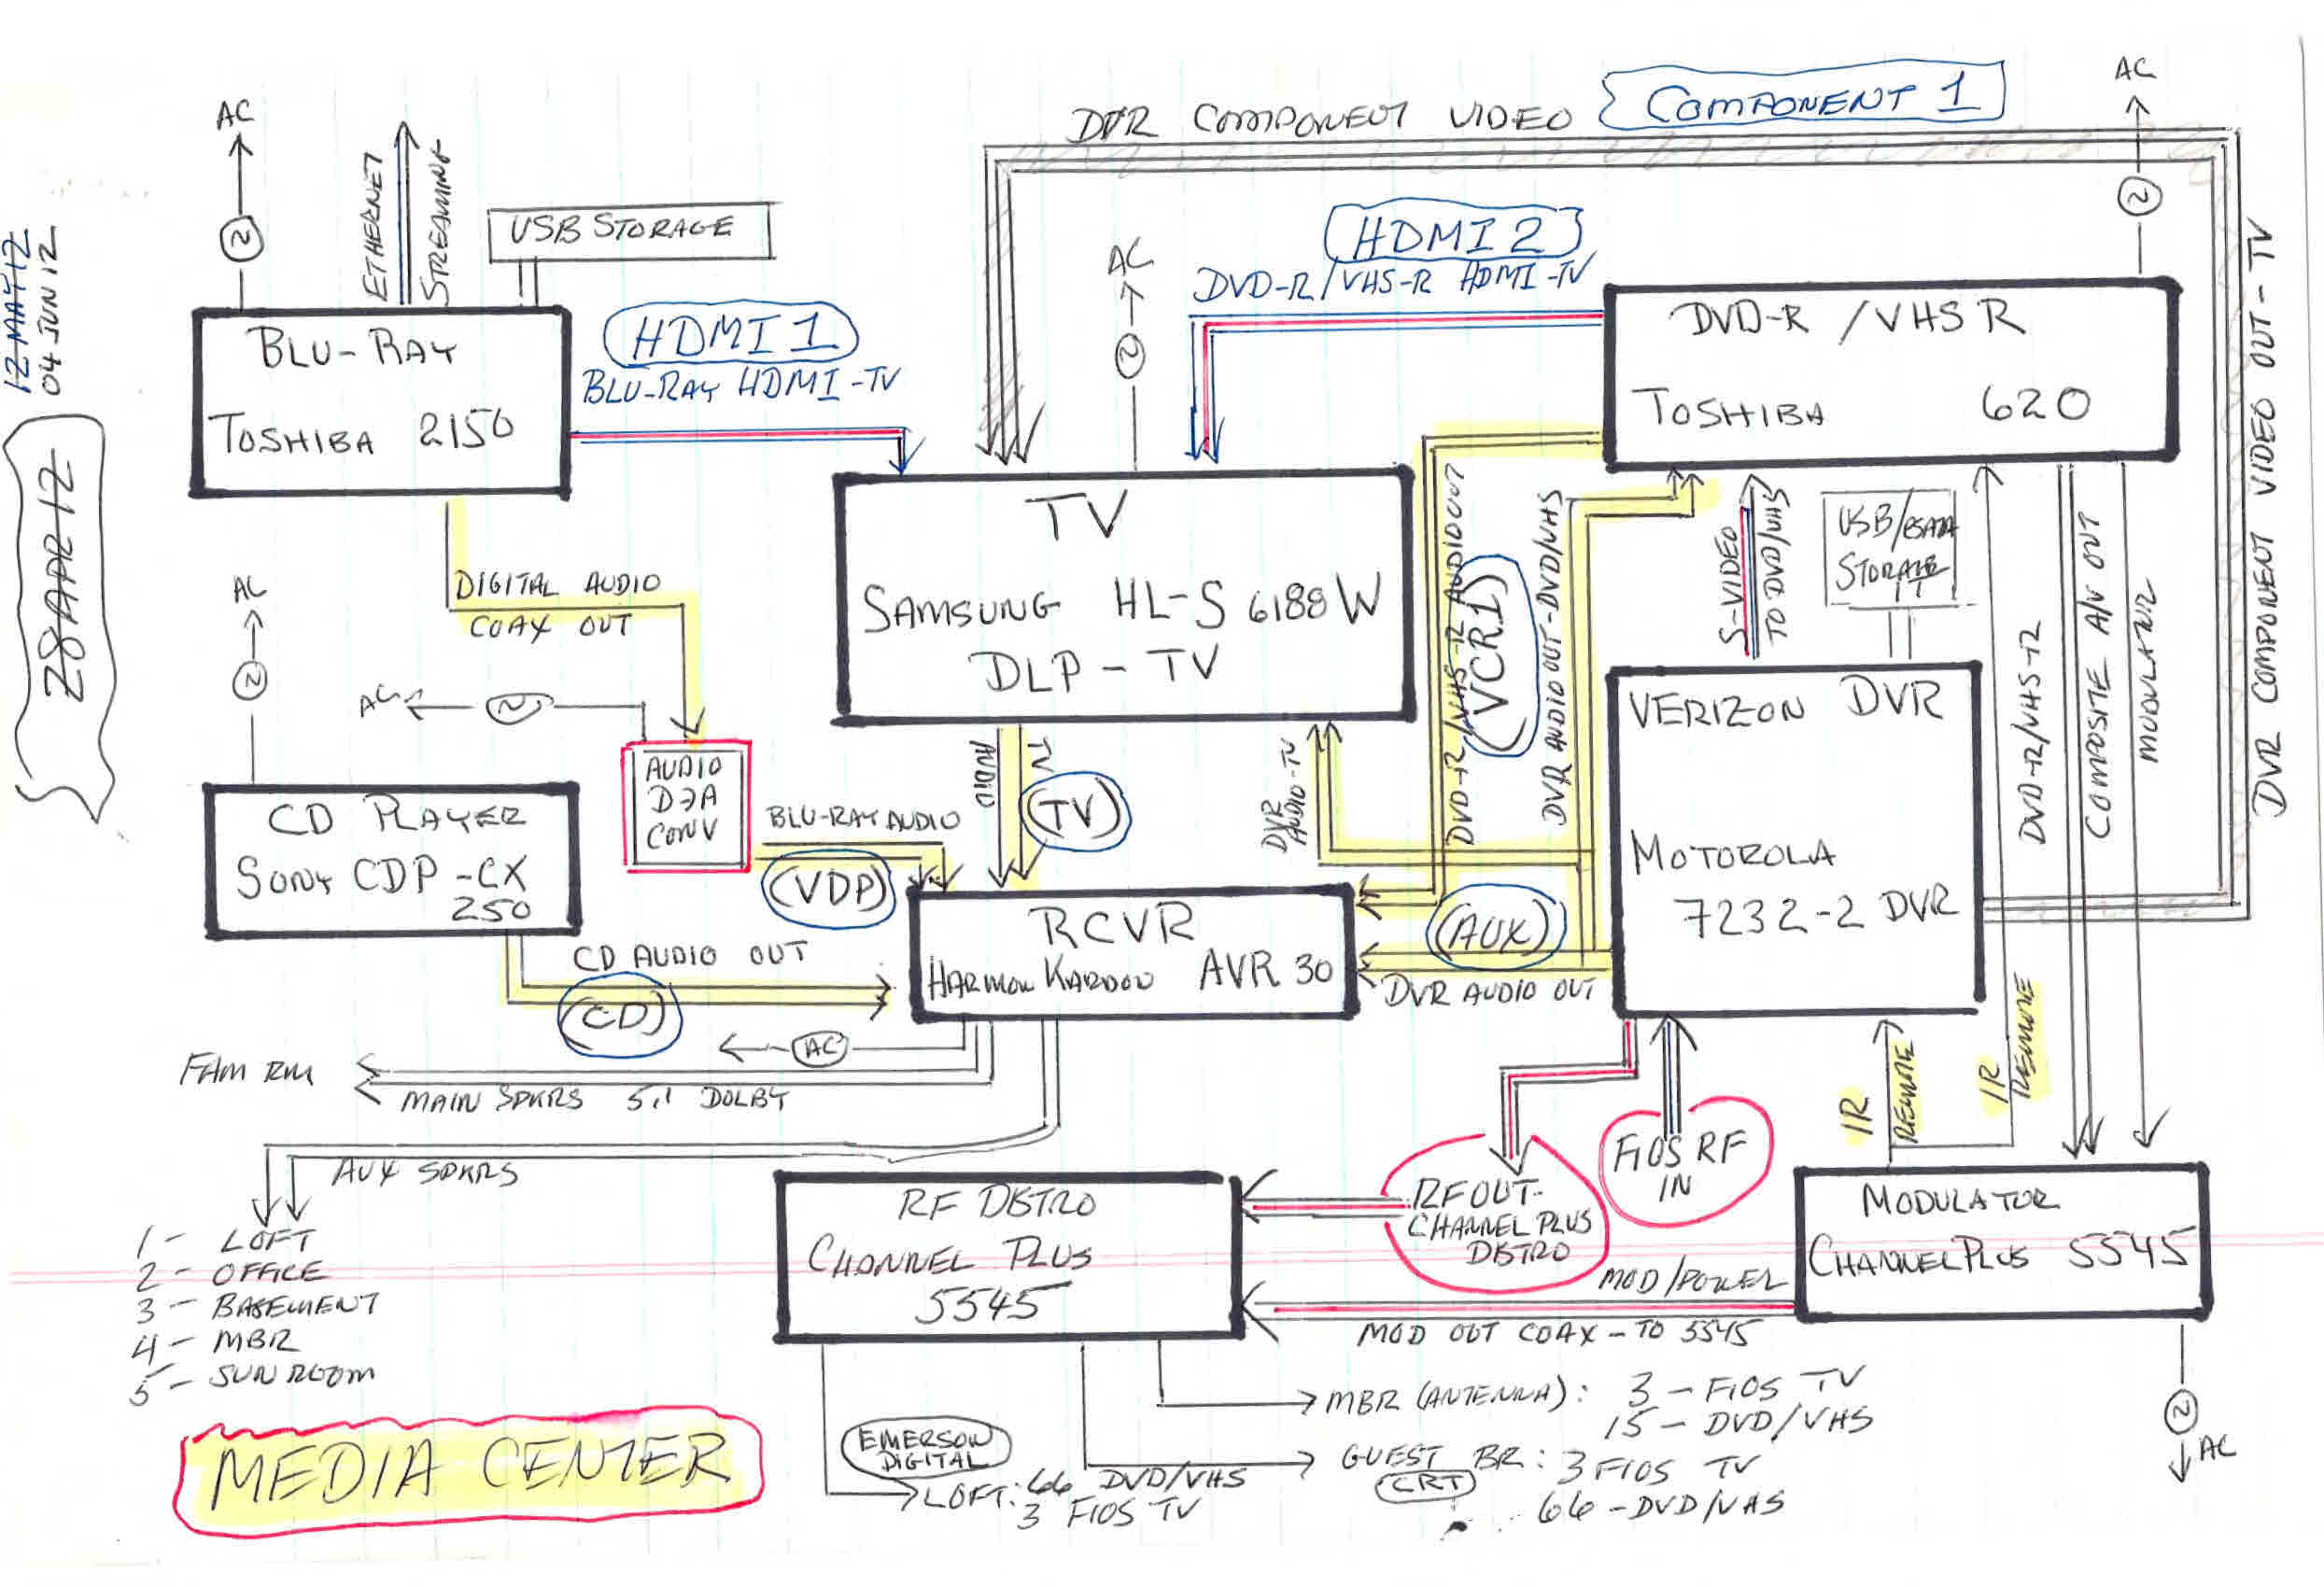 Tv Installation Verizon Fios Tv Installation Diagram FiOS Ont Verizon Fios  Dvd Wiring Diagram